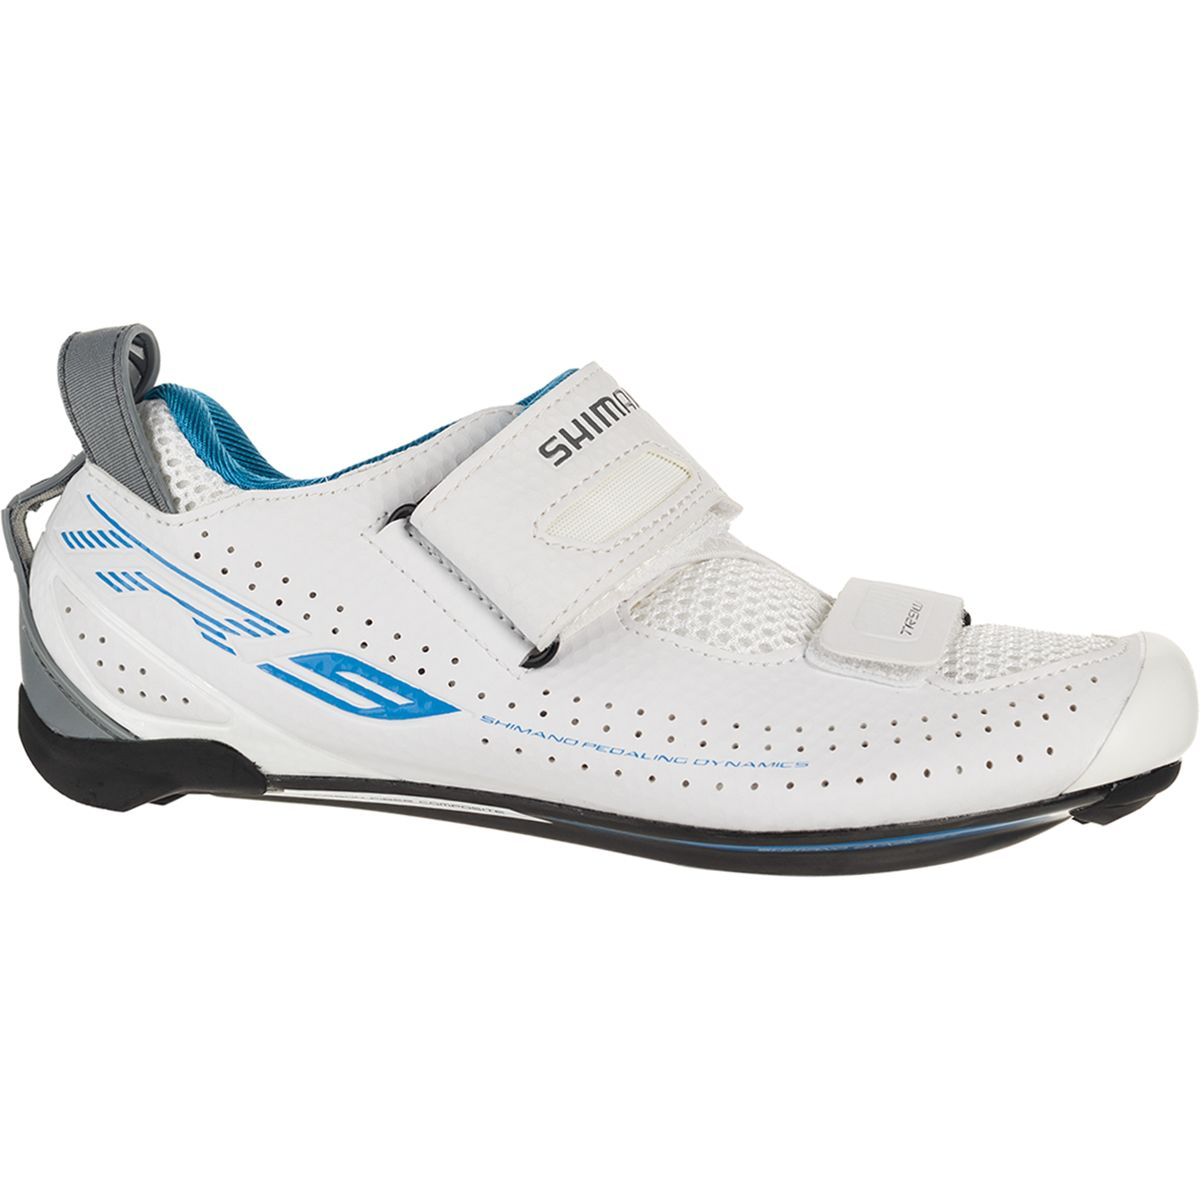 Triathlon Bike Shoes Women S